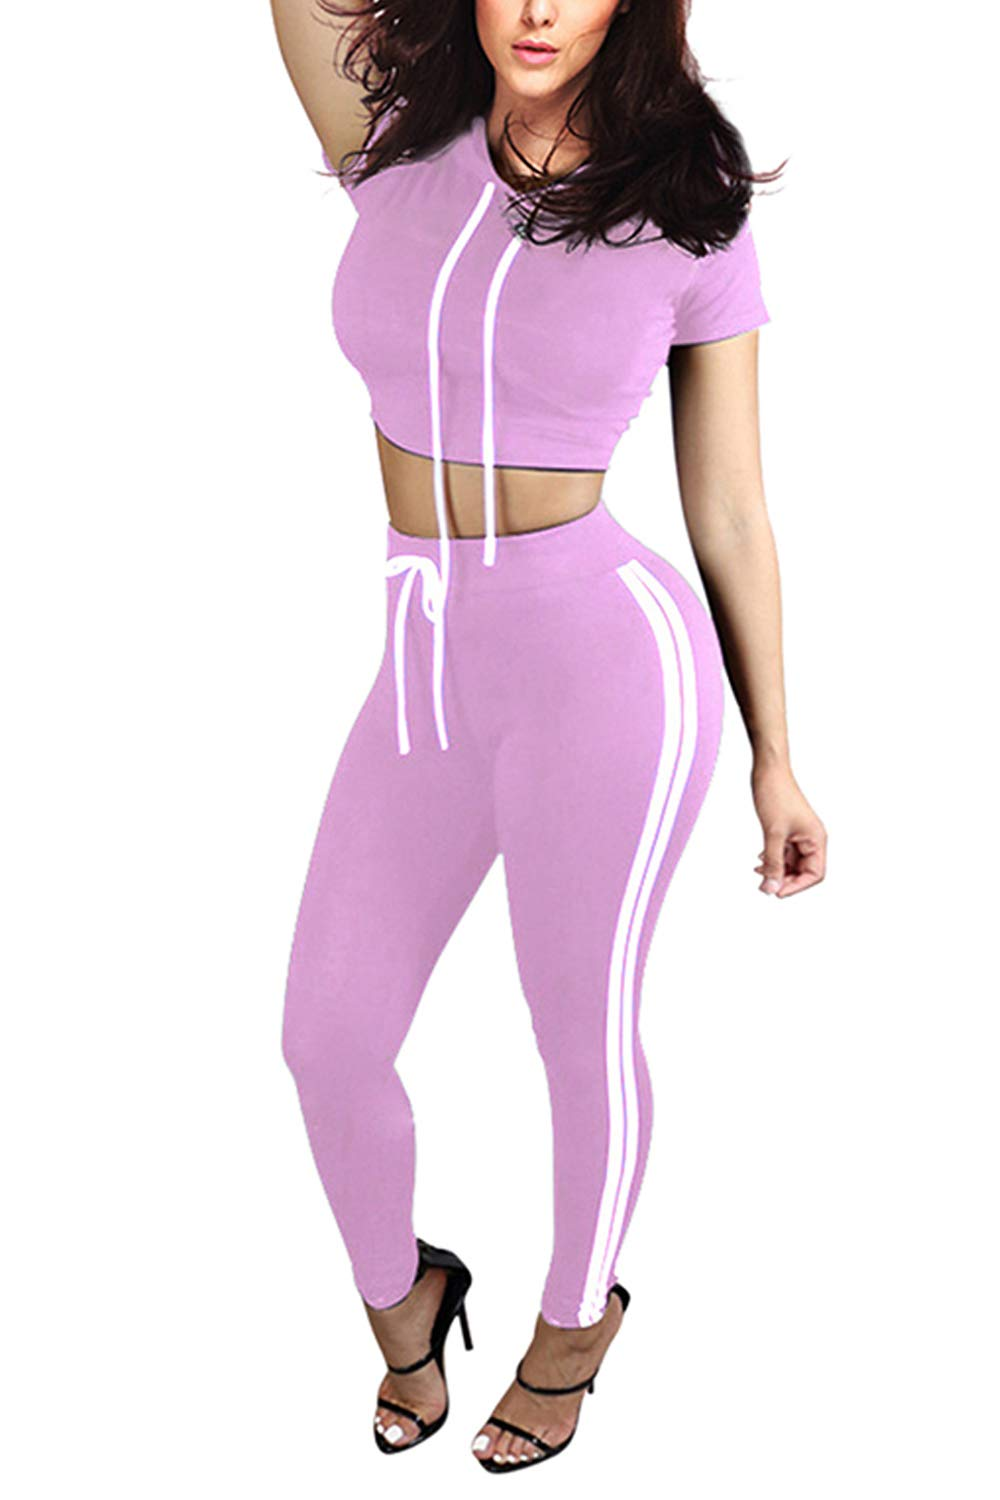 e9d7d21cf2d39 Best Rated in Women's Workout & Training Tracksuits & Helpful ...